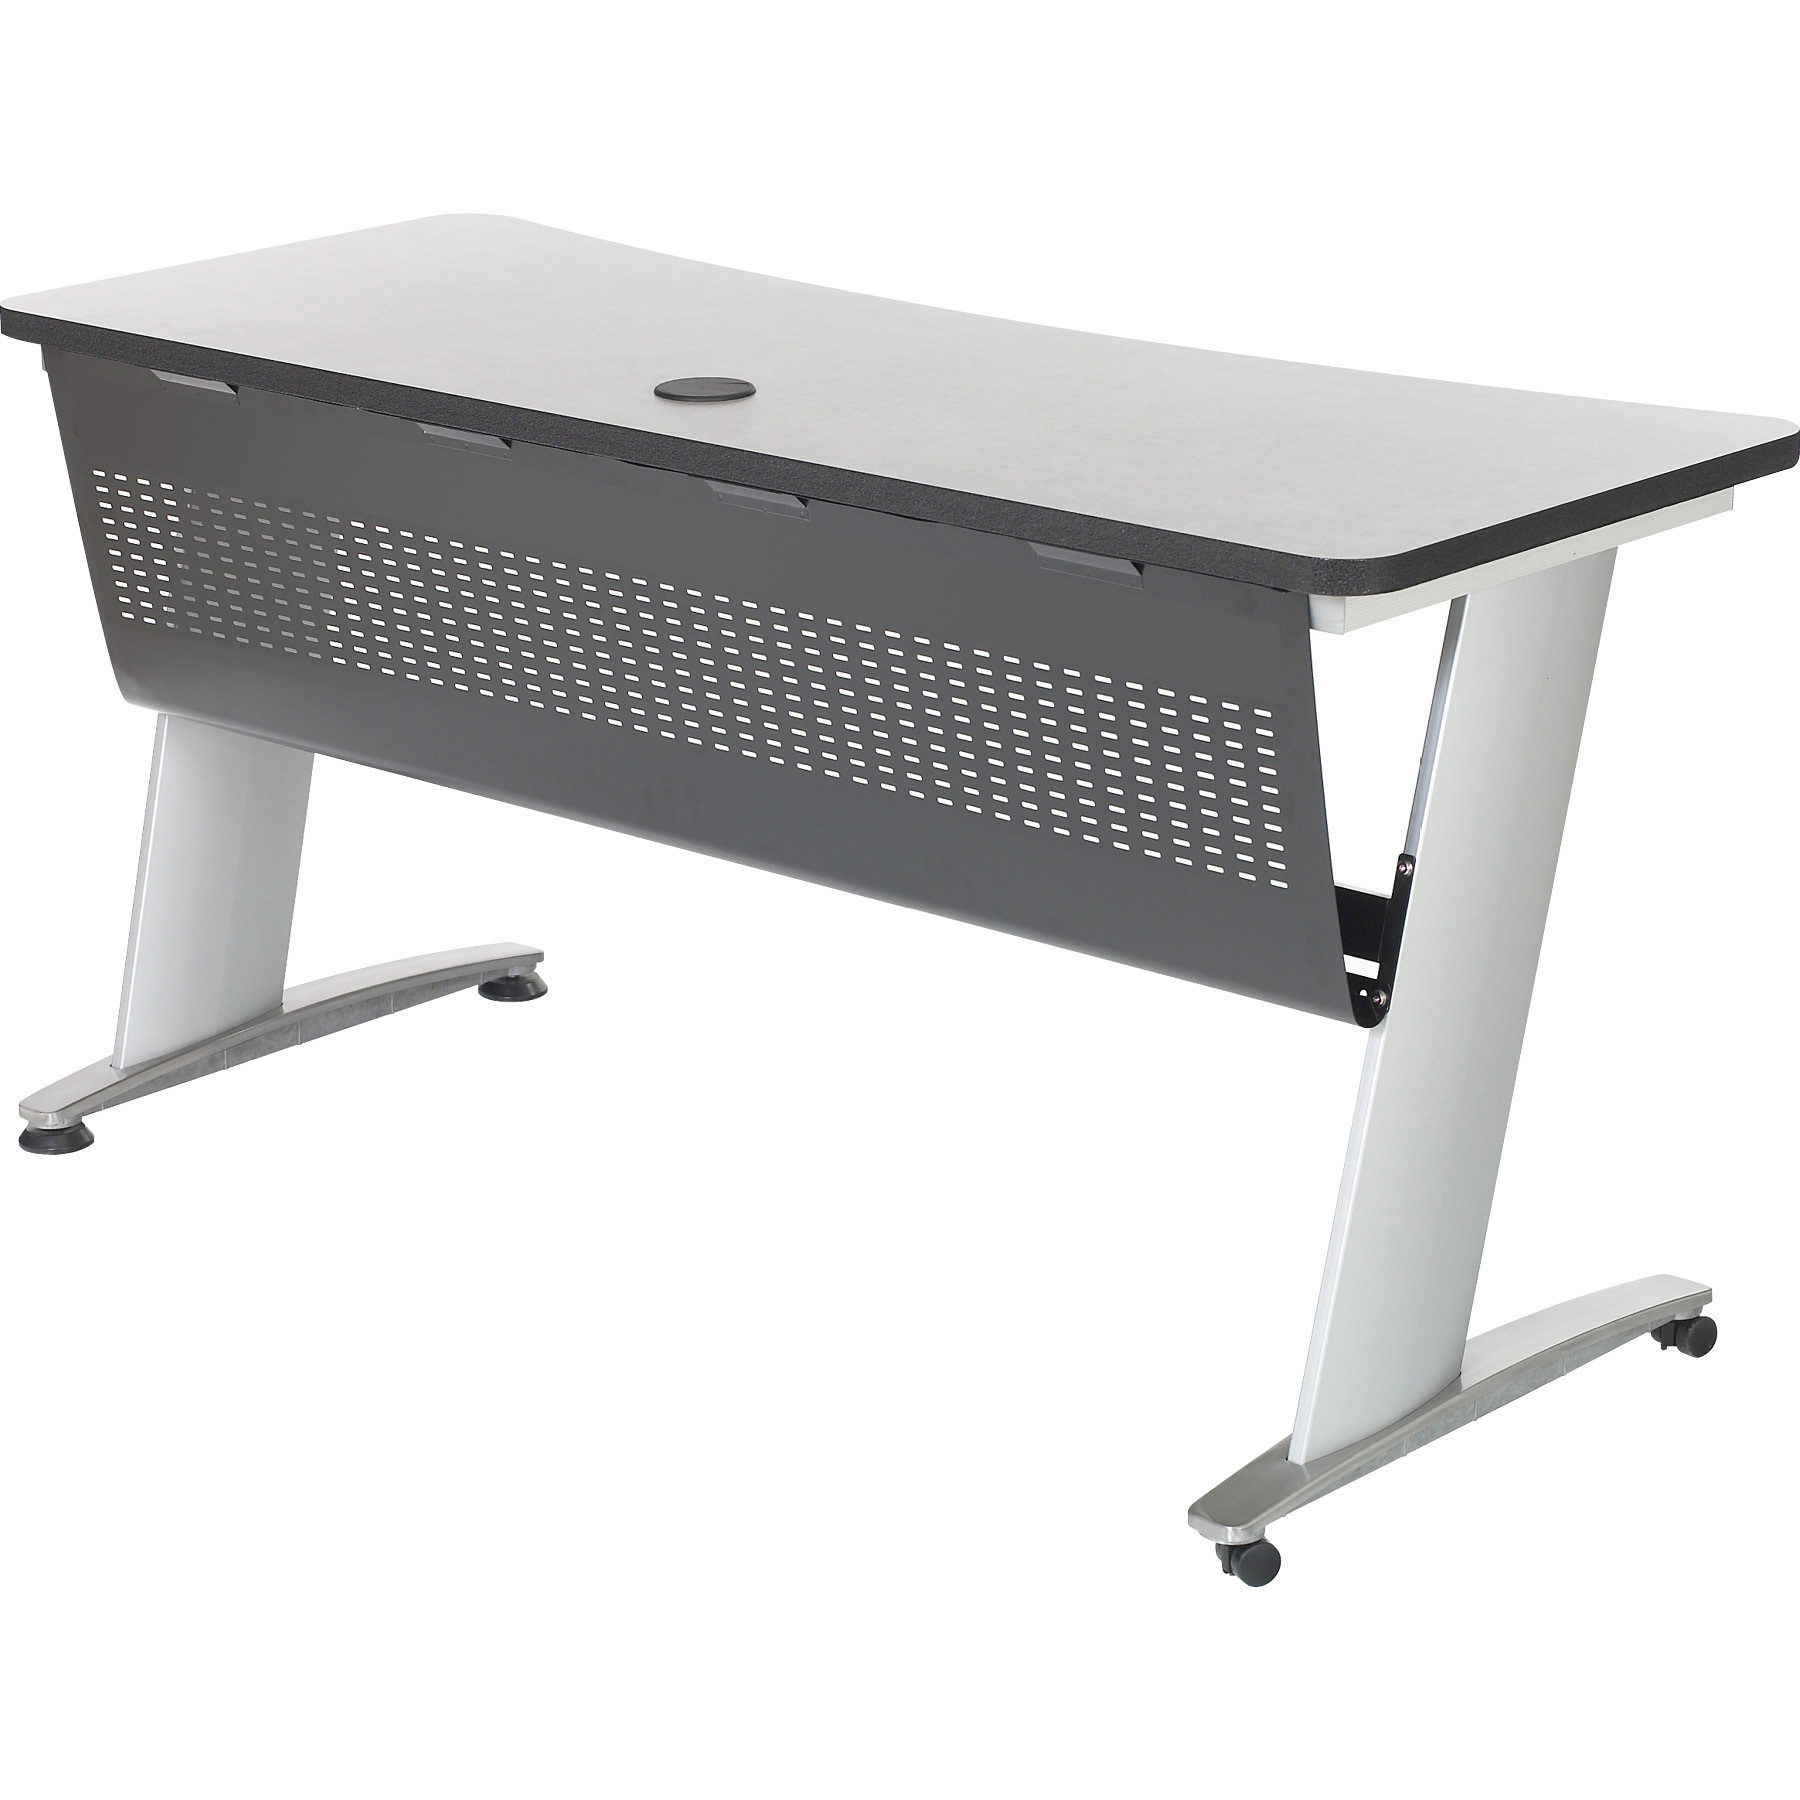 6153 Computer Table with modesty panel